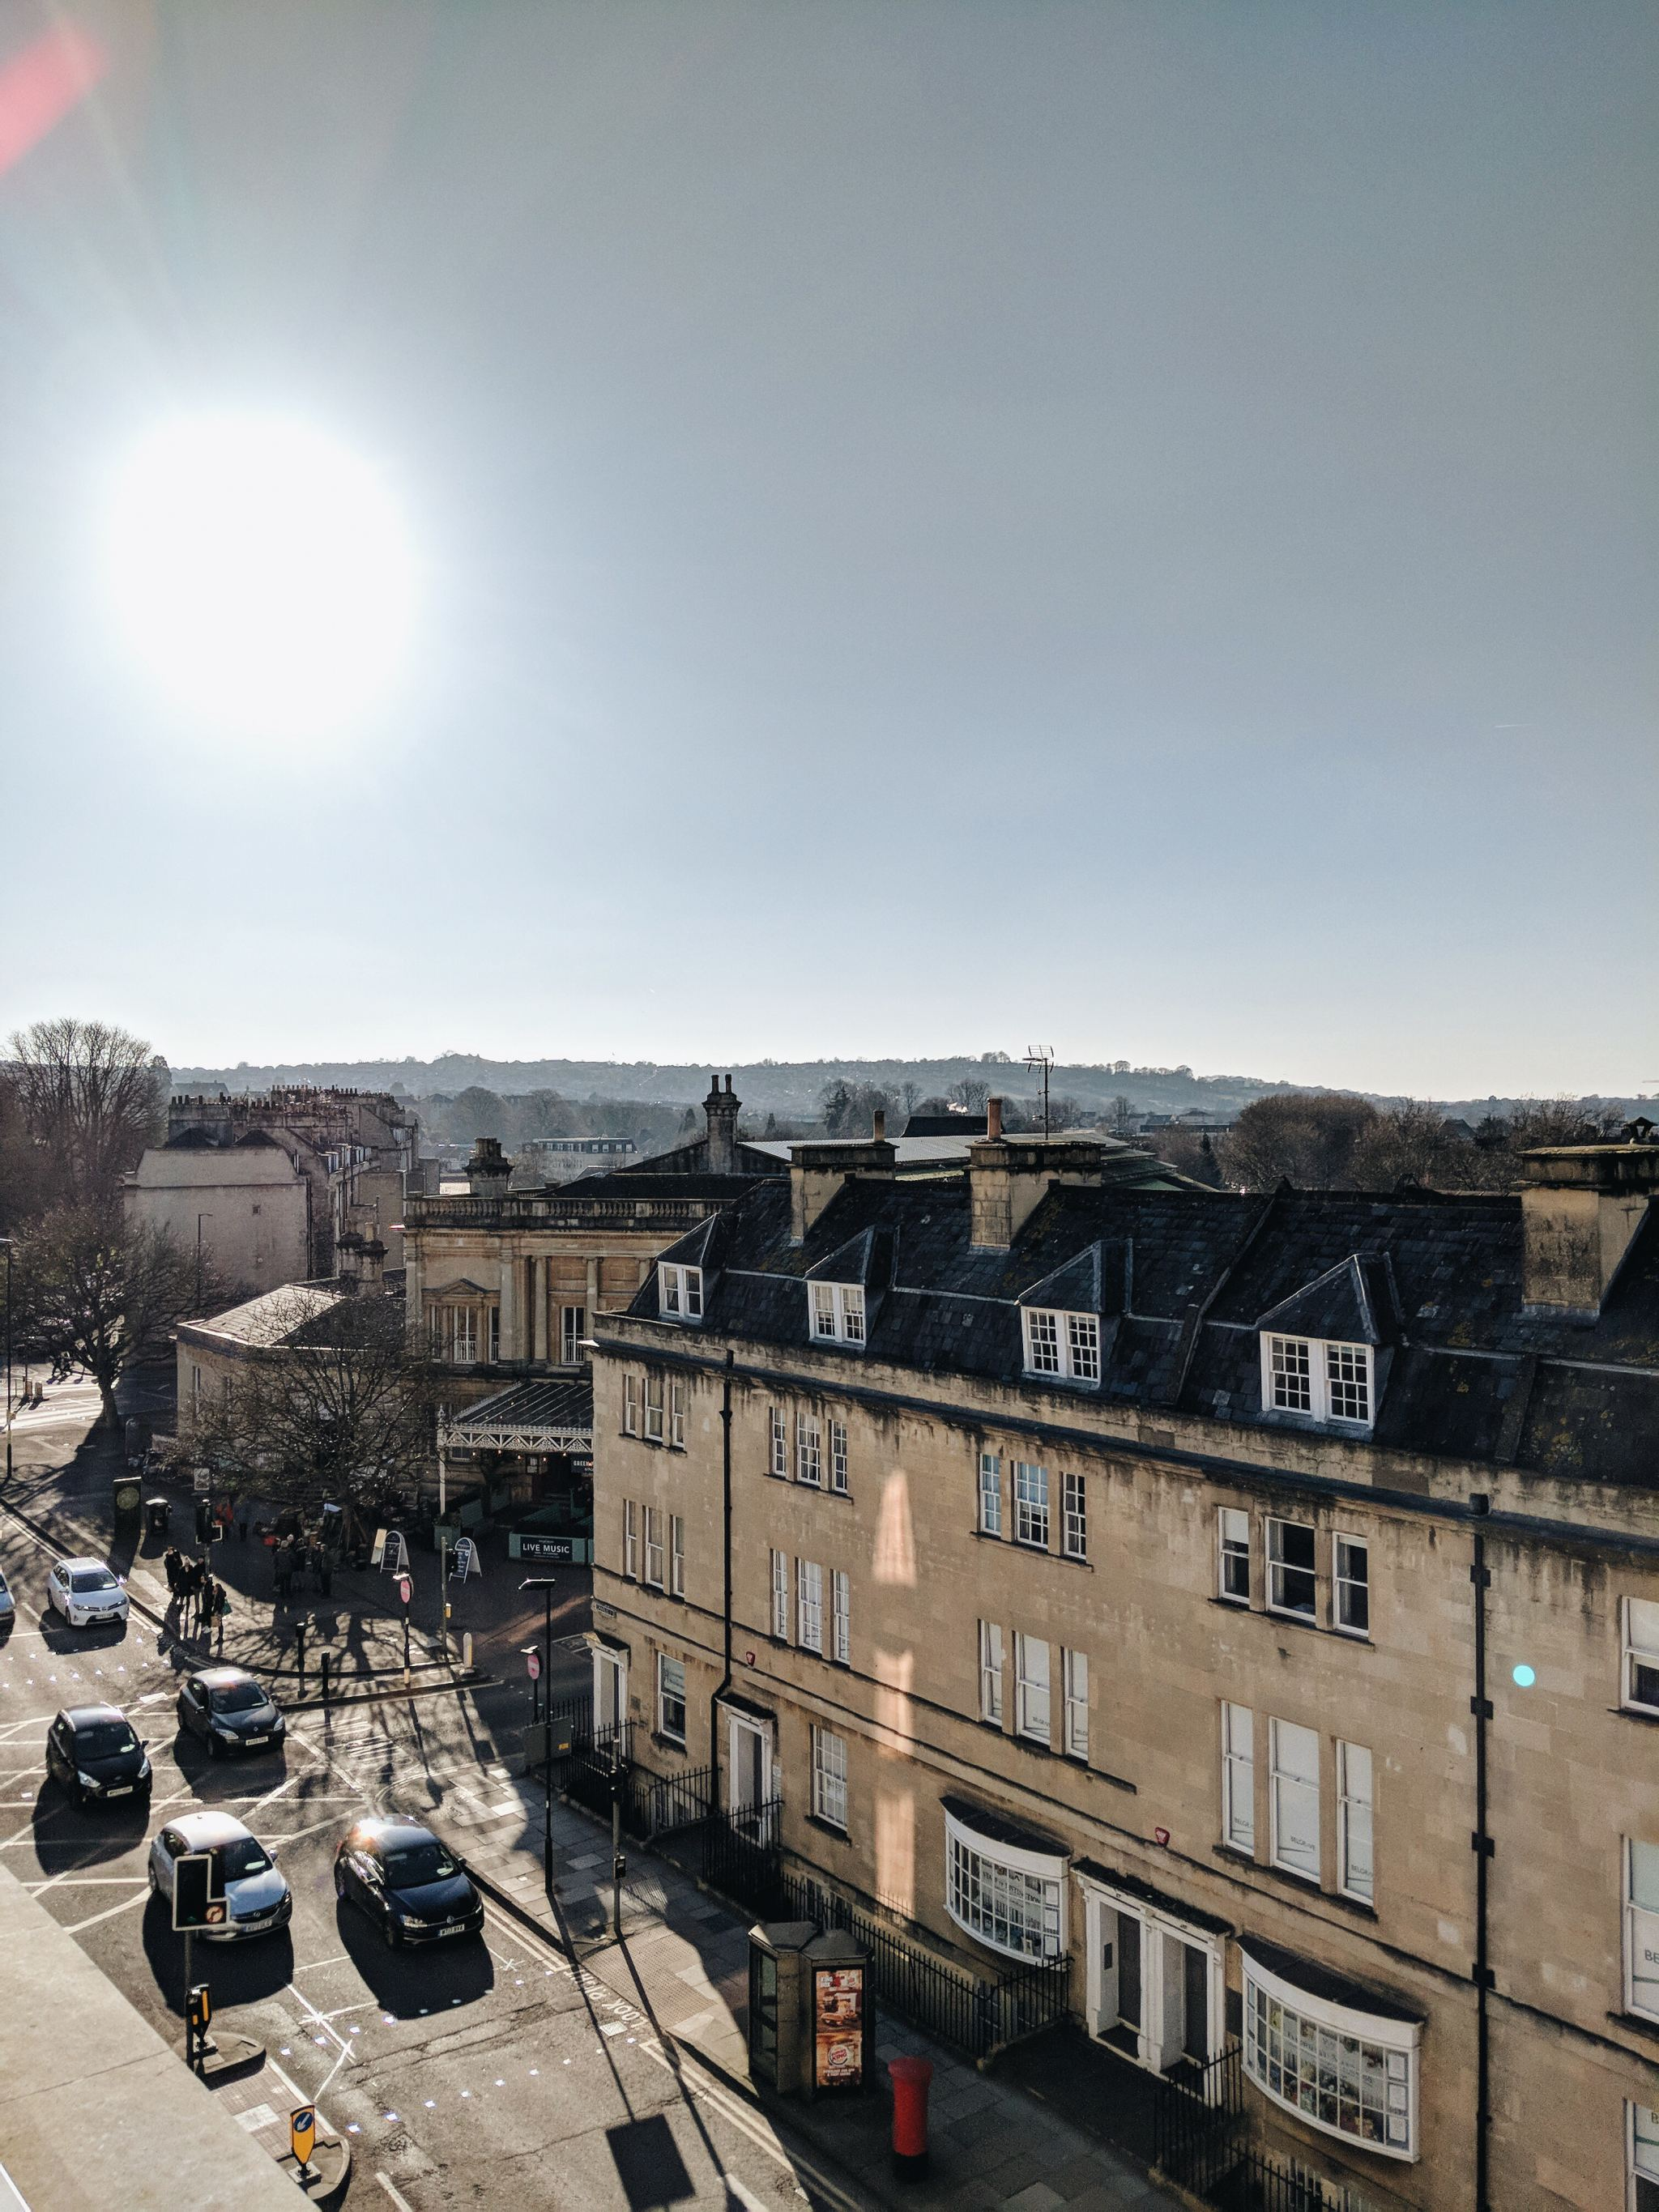 Cocoa Chelsea Apex Hotels City of Bath balcony view